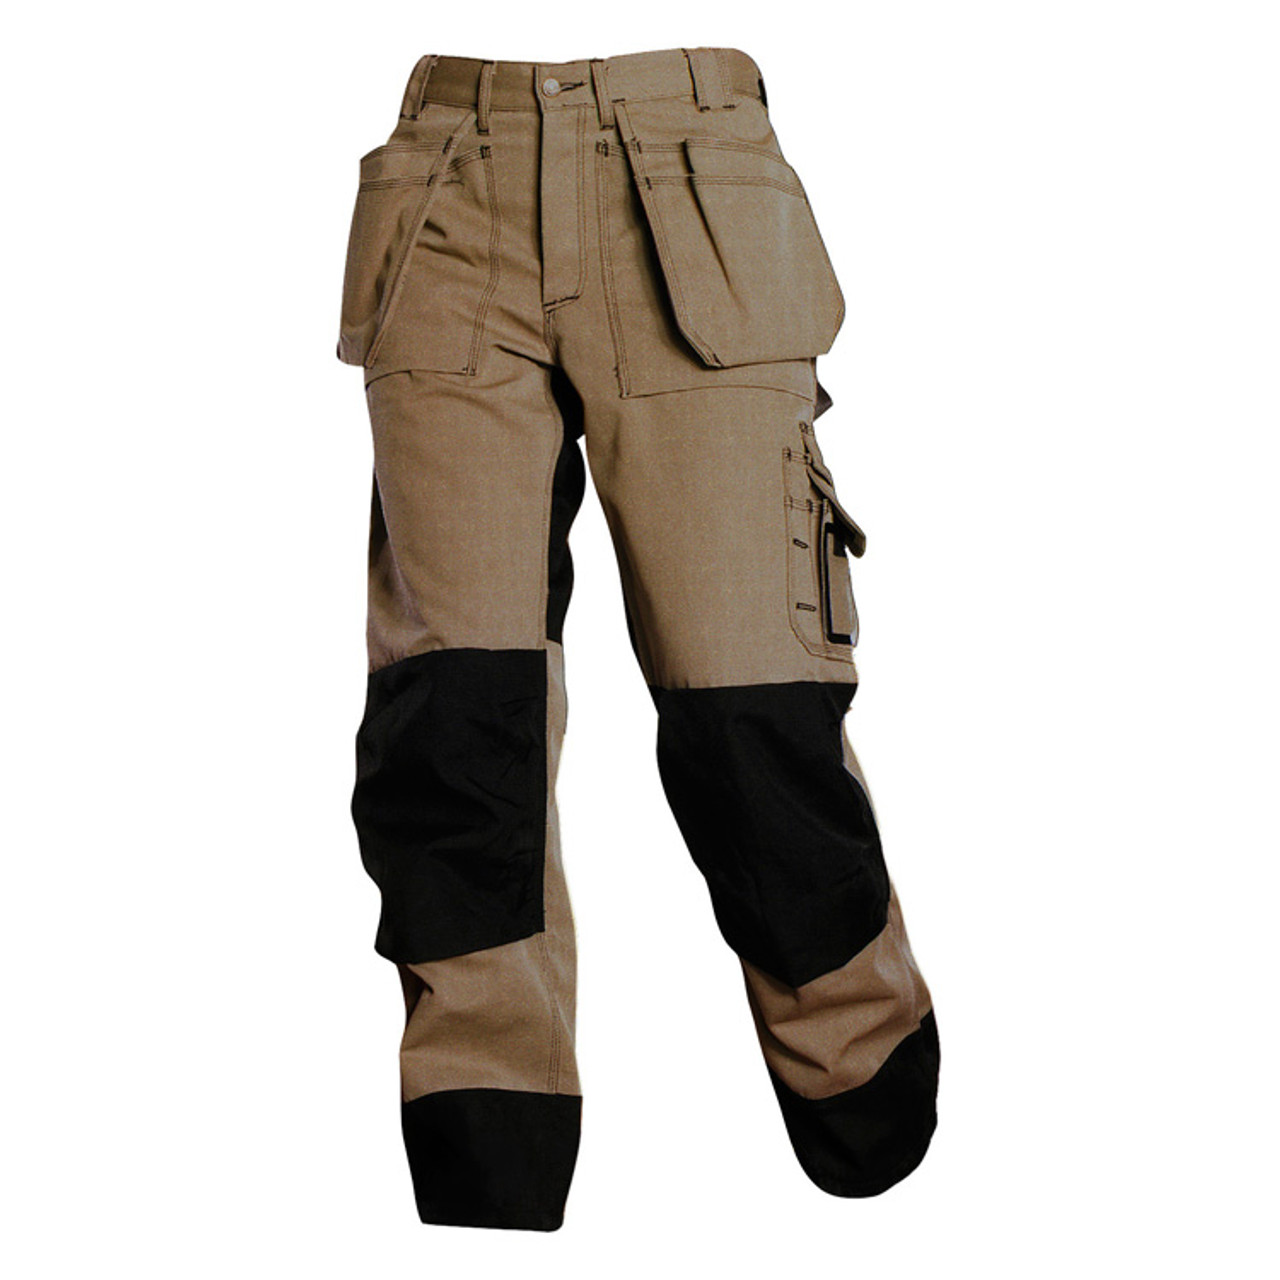 Prima Blaklader Heavy Worker Pant with Utility Pockets - Herbert's Boots FV-39